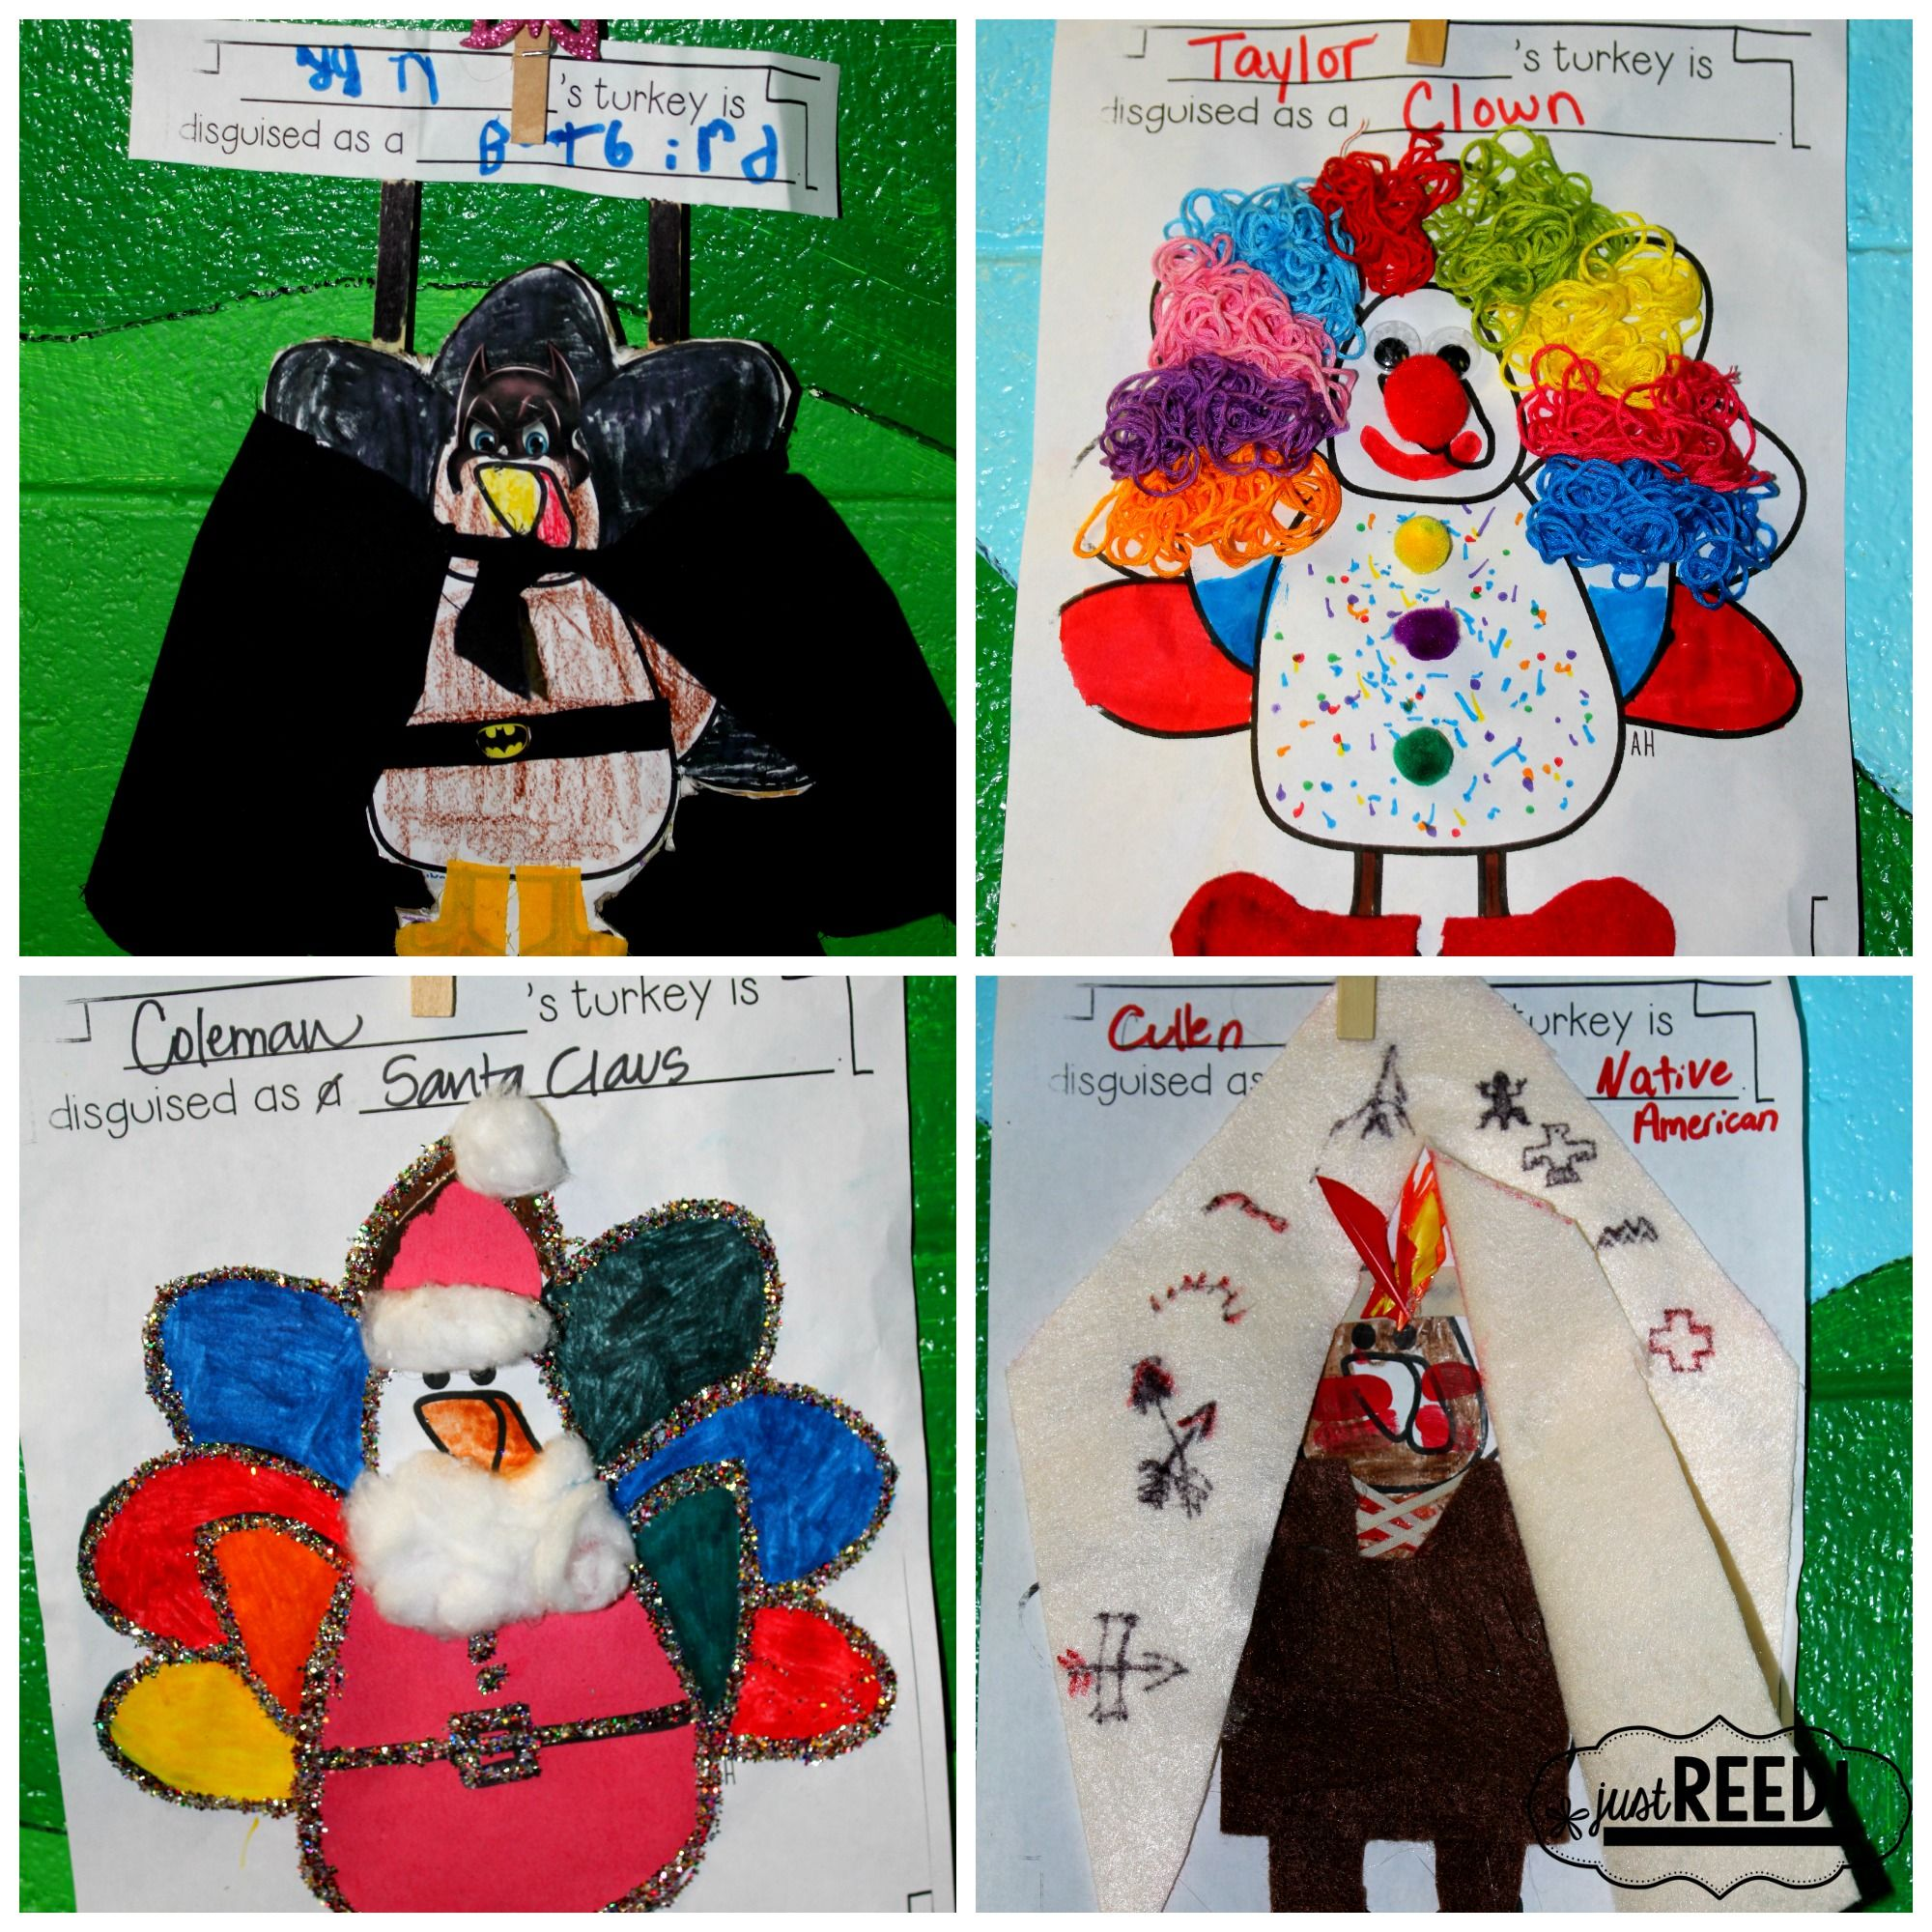 18 Adorable Turkey in Disguise Project Ideas - Just Reed & Play #turkeydisguiseprojectideaskid